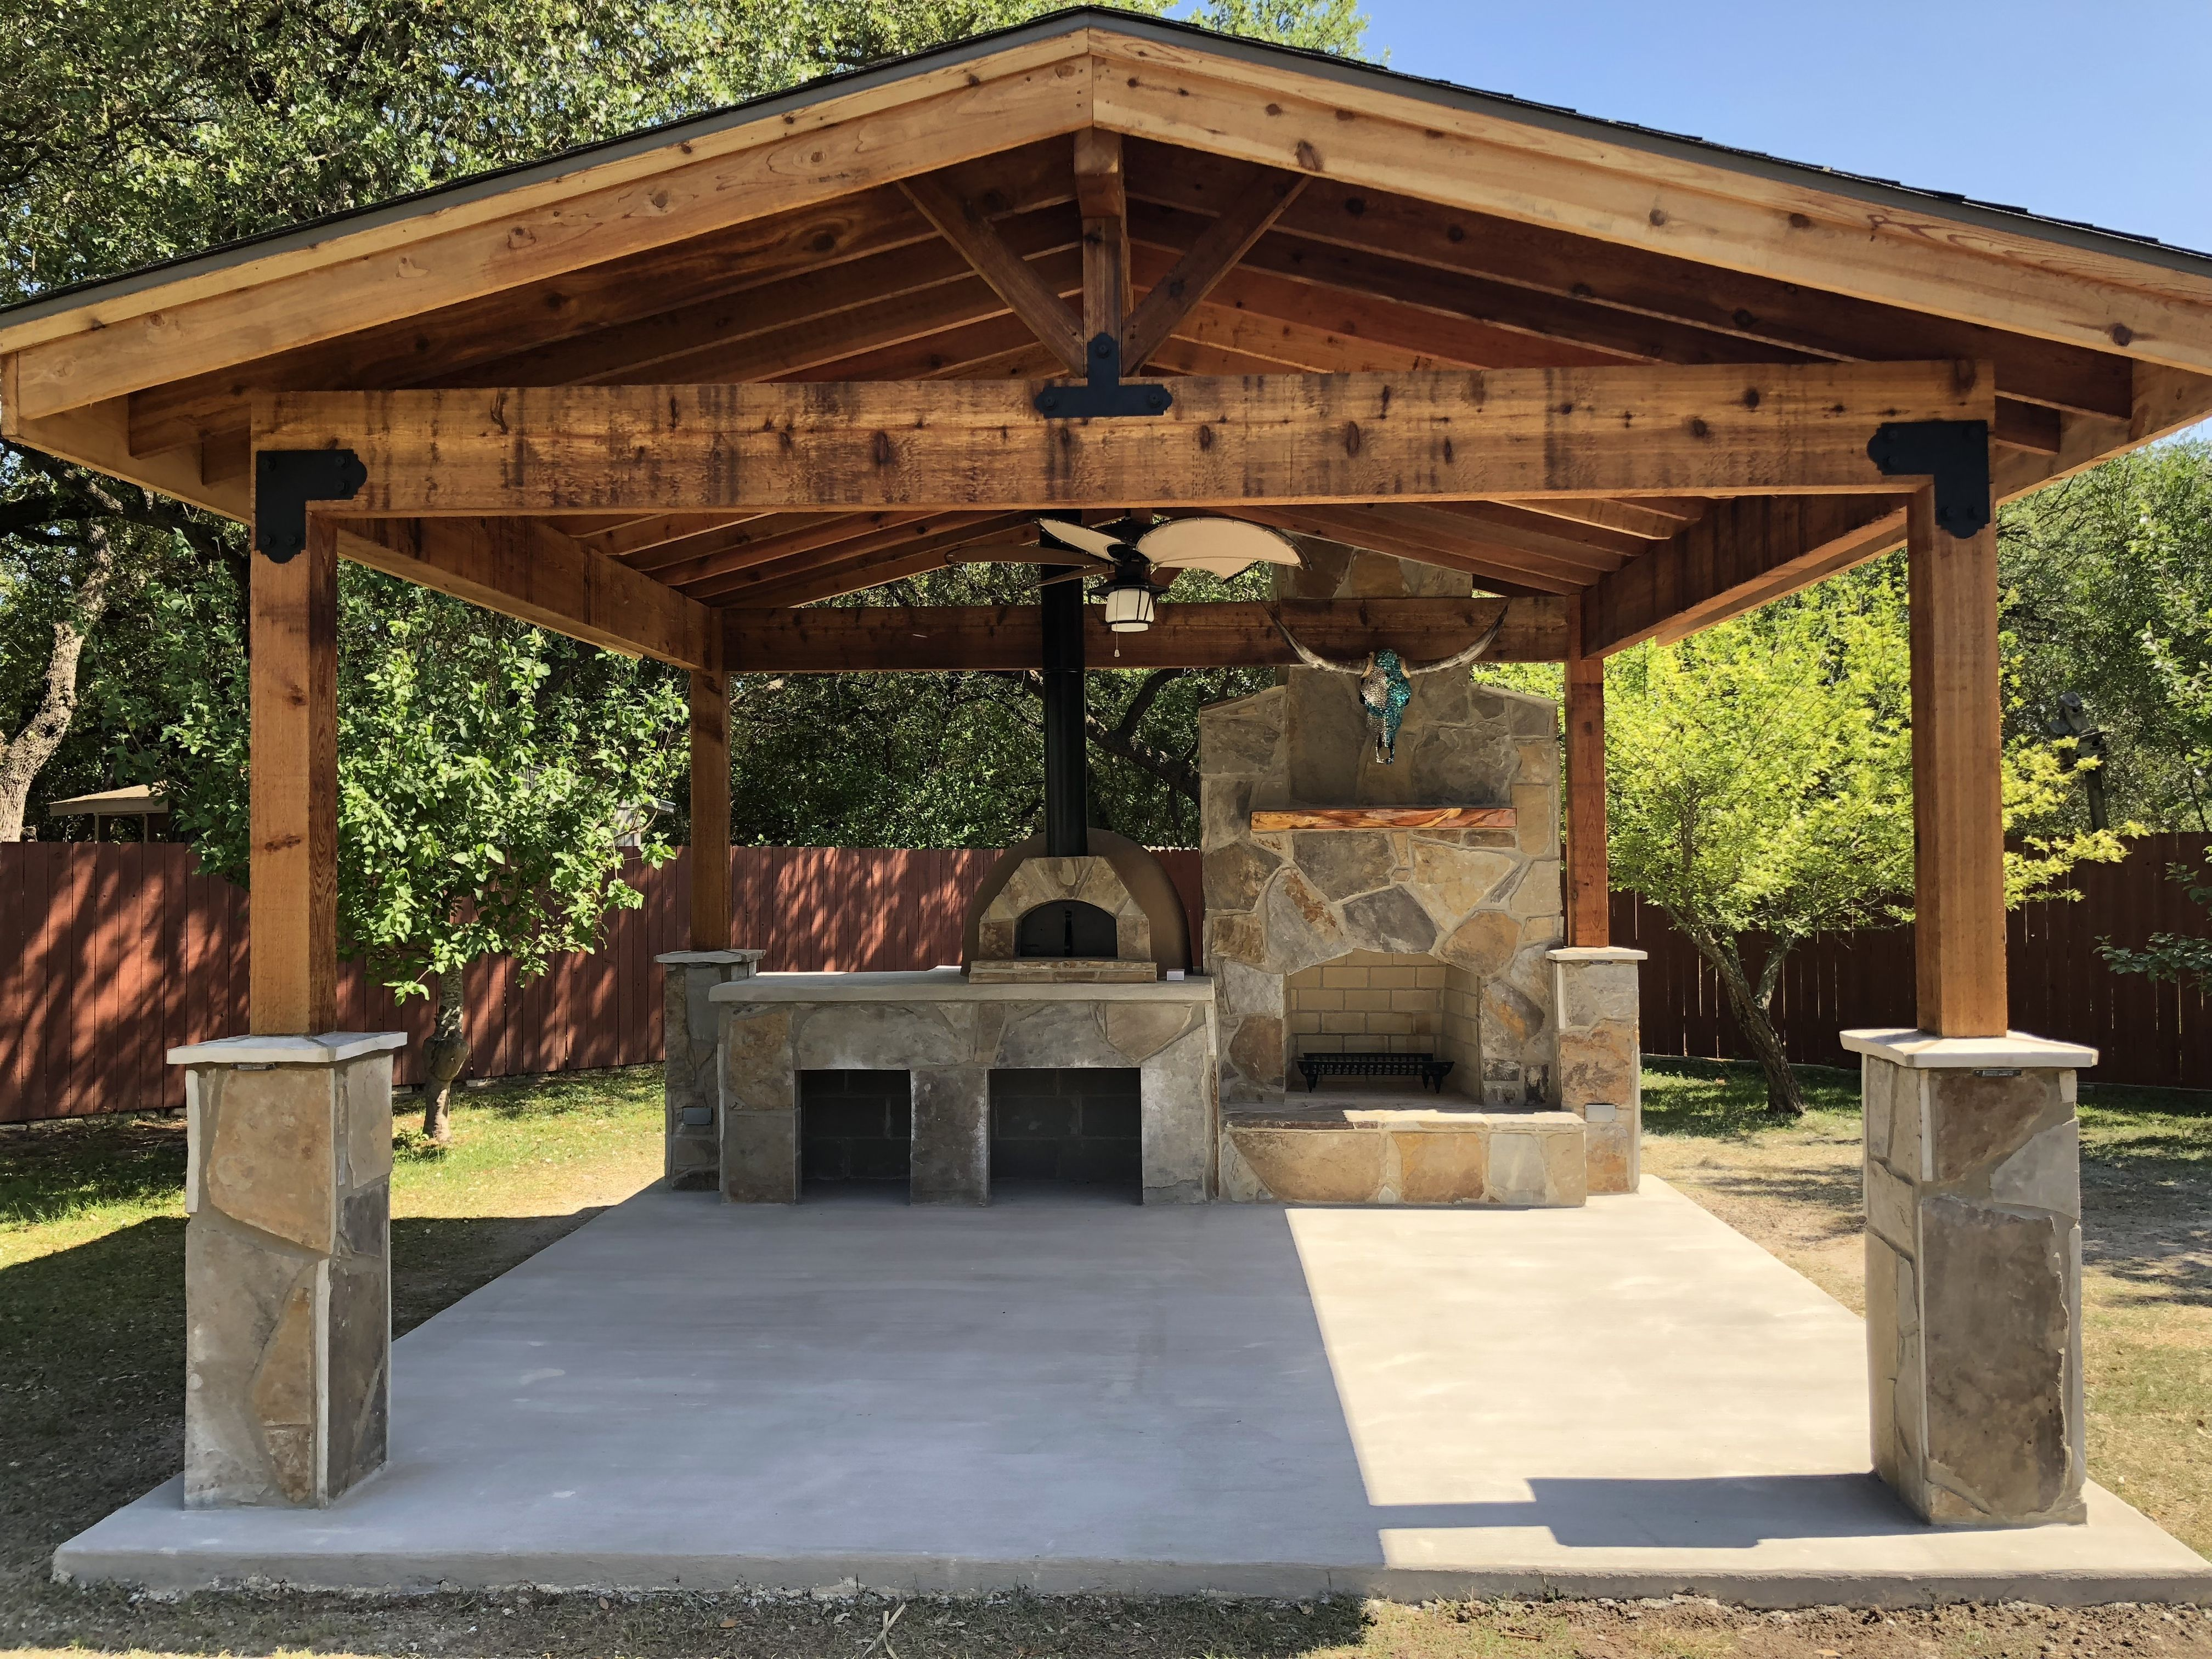 best outdoor kitchen ideas design for small space on a budget outdoorkitchen outdoor kitchen on outdoor kitchen gazebo ideas id=68012